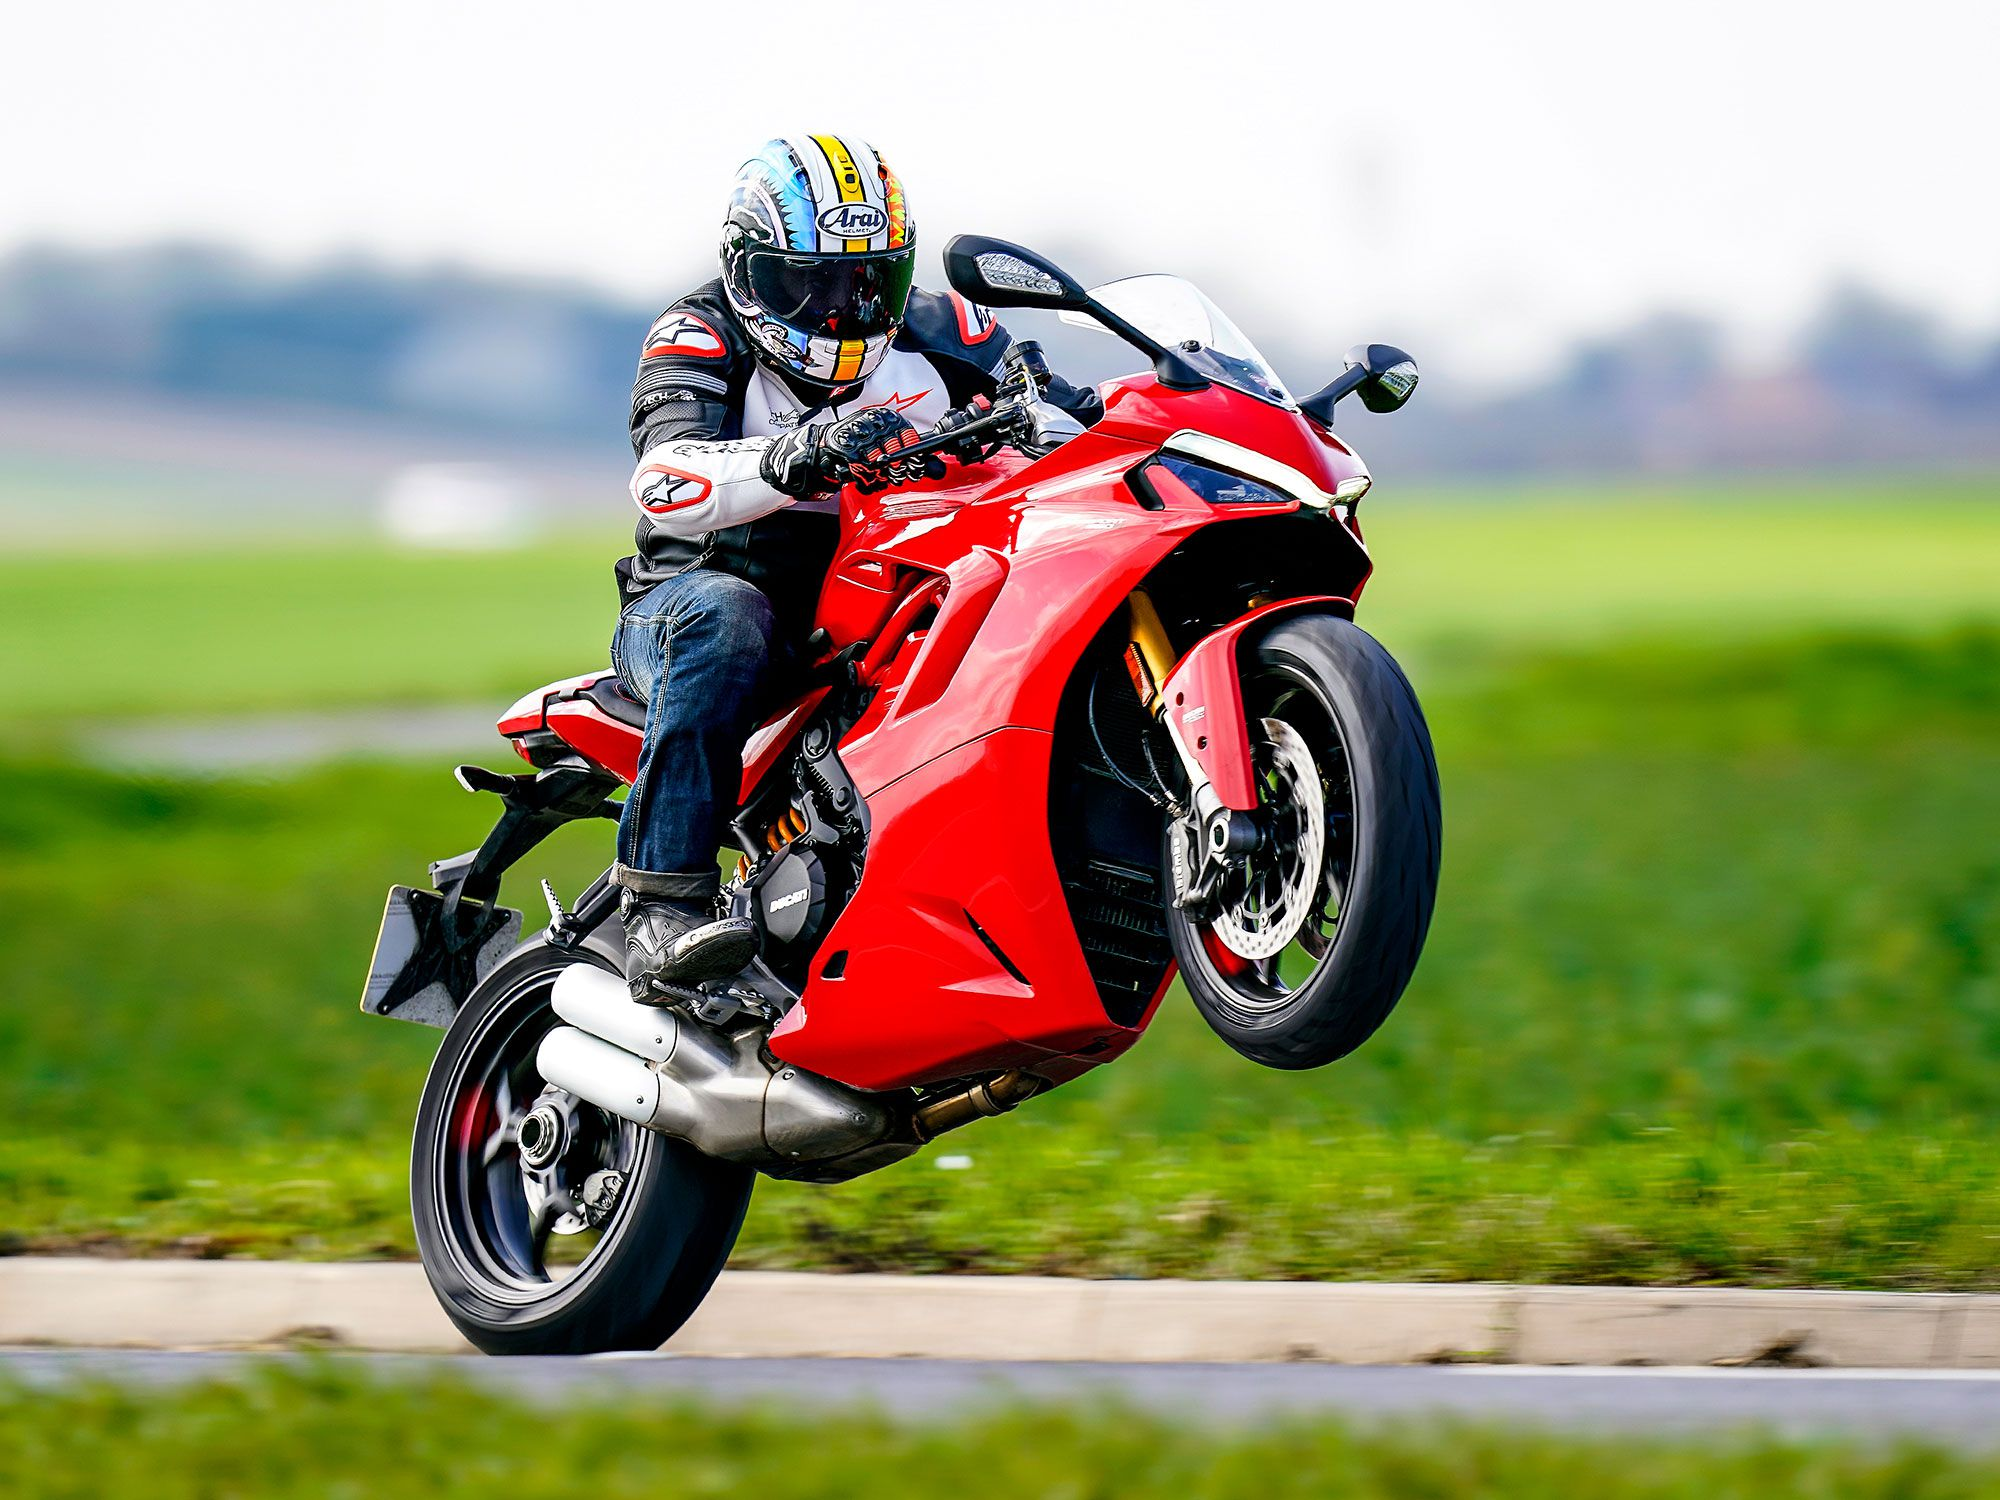 The bodywork and style are completely new, now featuring full-LED headlight with Daytime Running Light (DRL). The styling isn't just for aesthetic reasons, to bring it in line with the Panigale family, but also deflects warm engine air away from the rider.